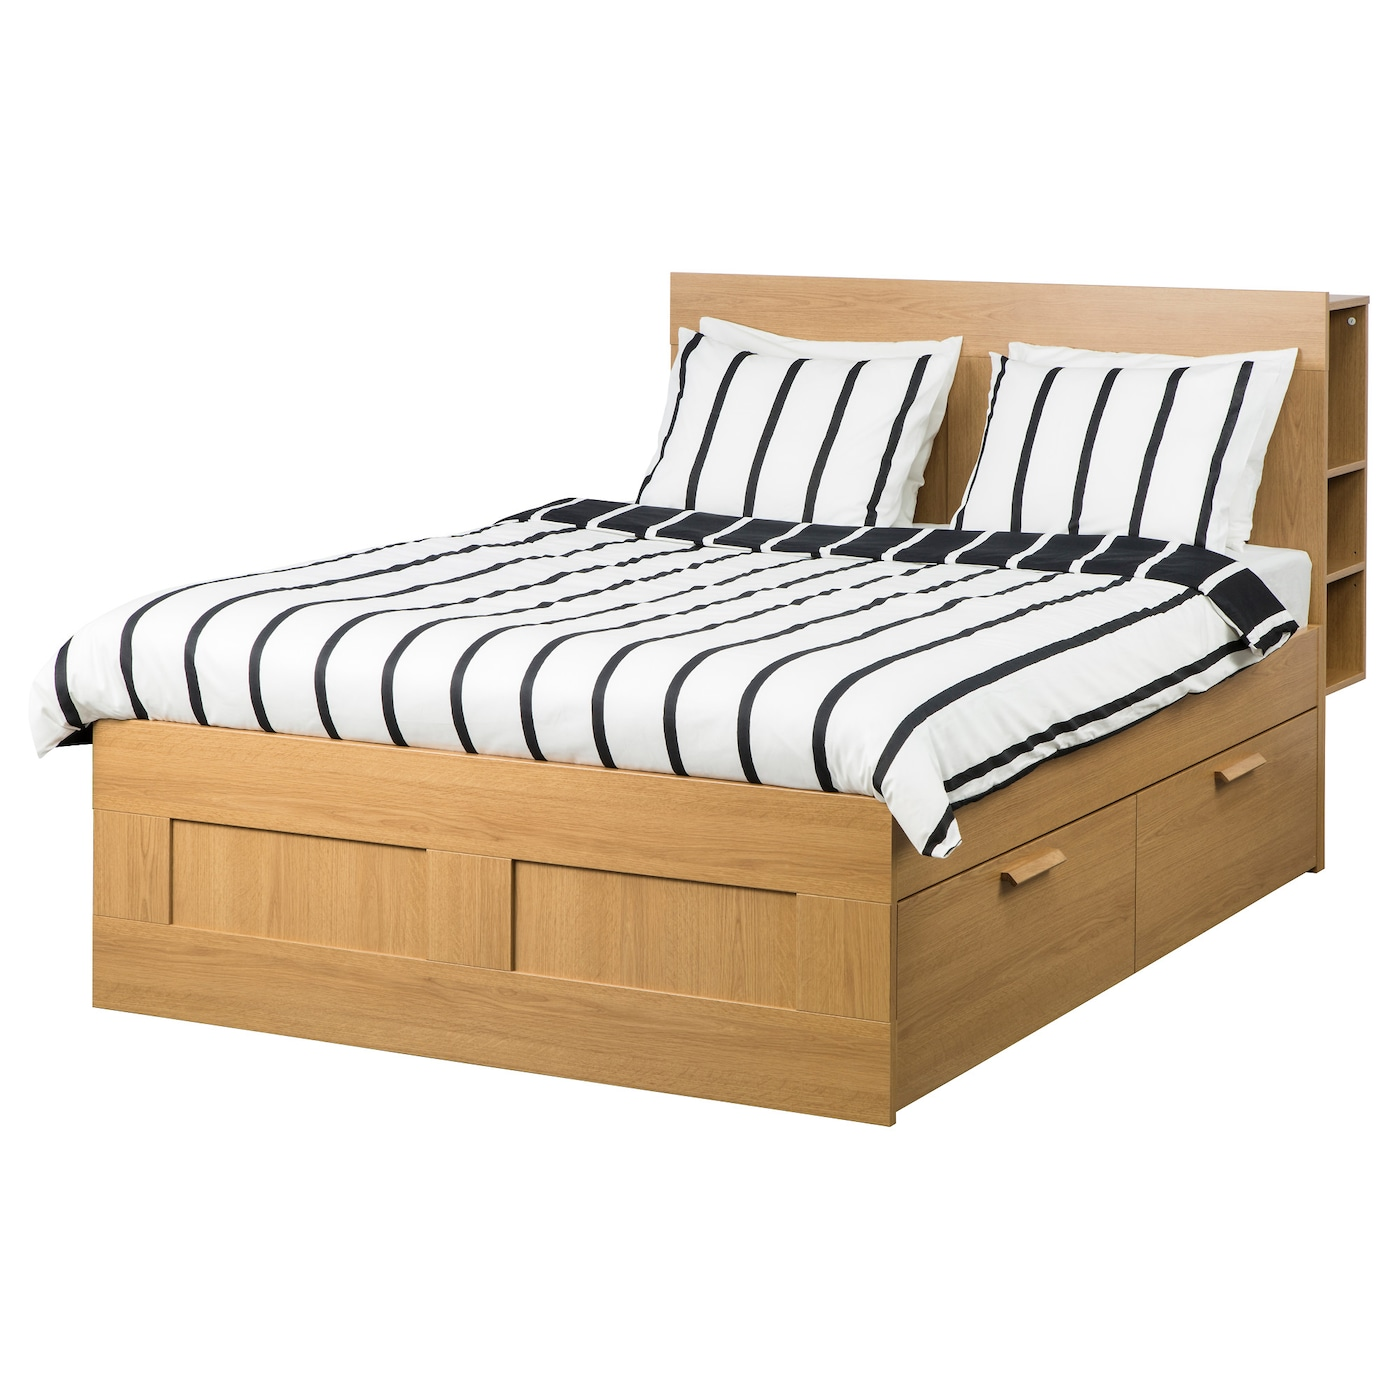 BRIMNES Bed frame w storage and headboard Oak effect leirsund Standard Double IKEA